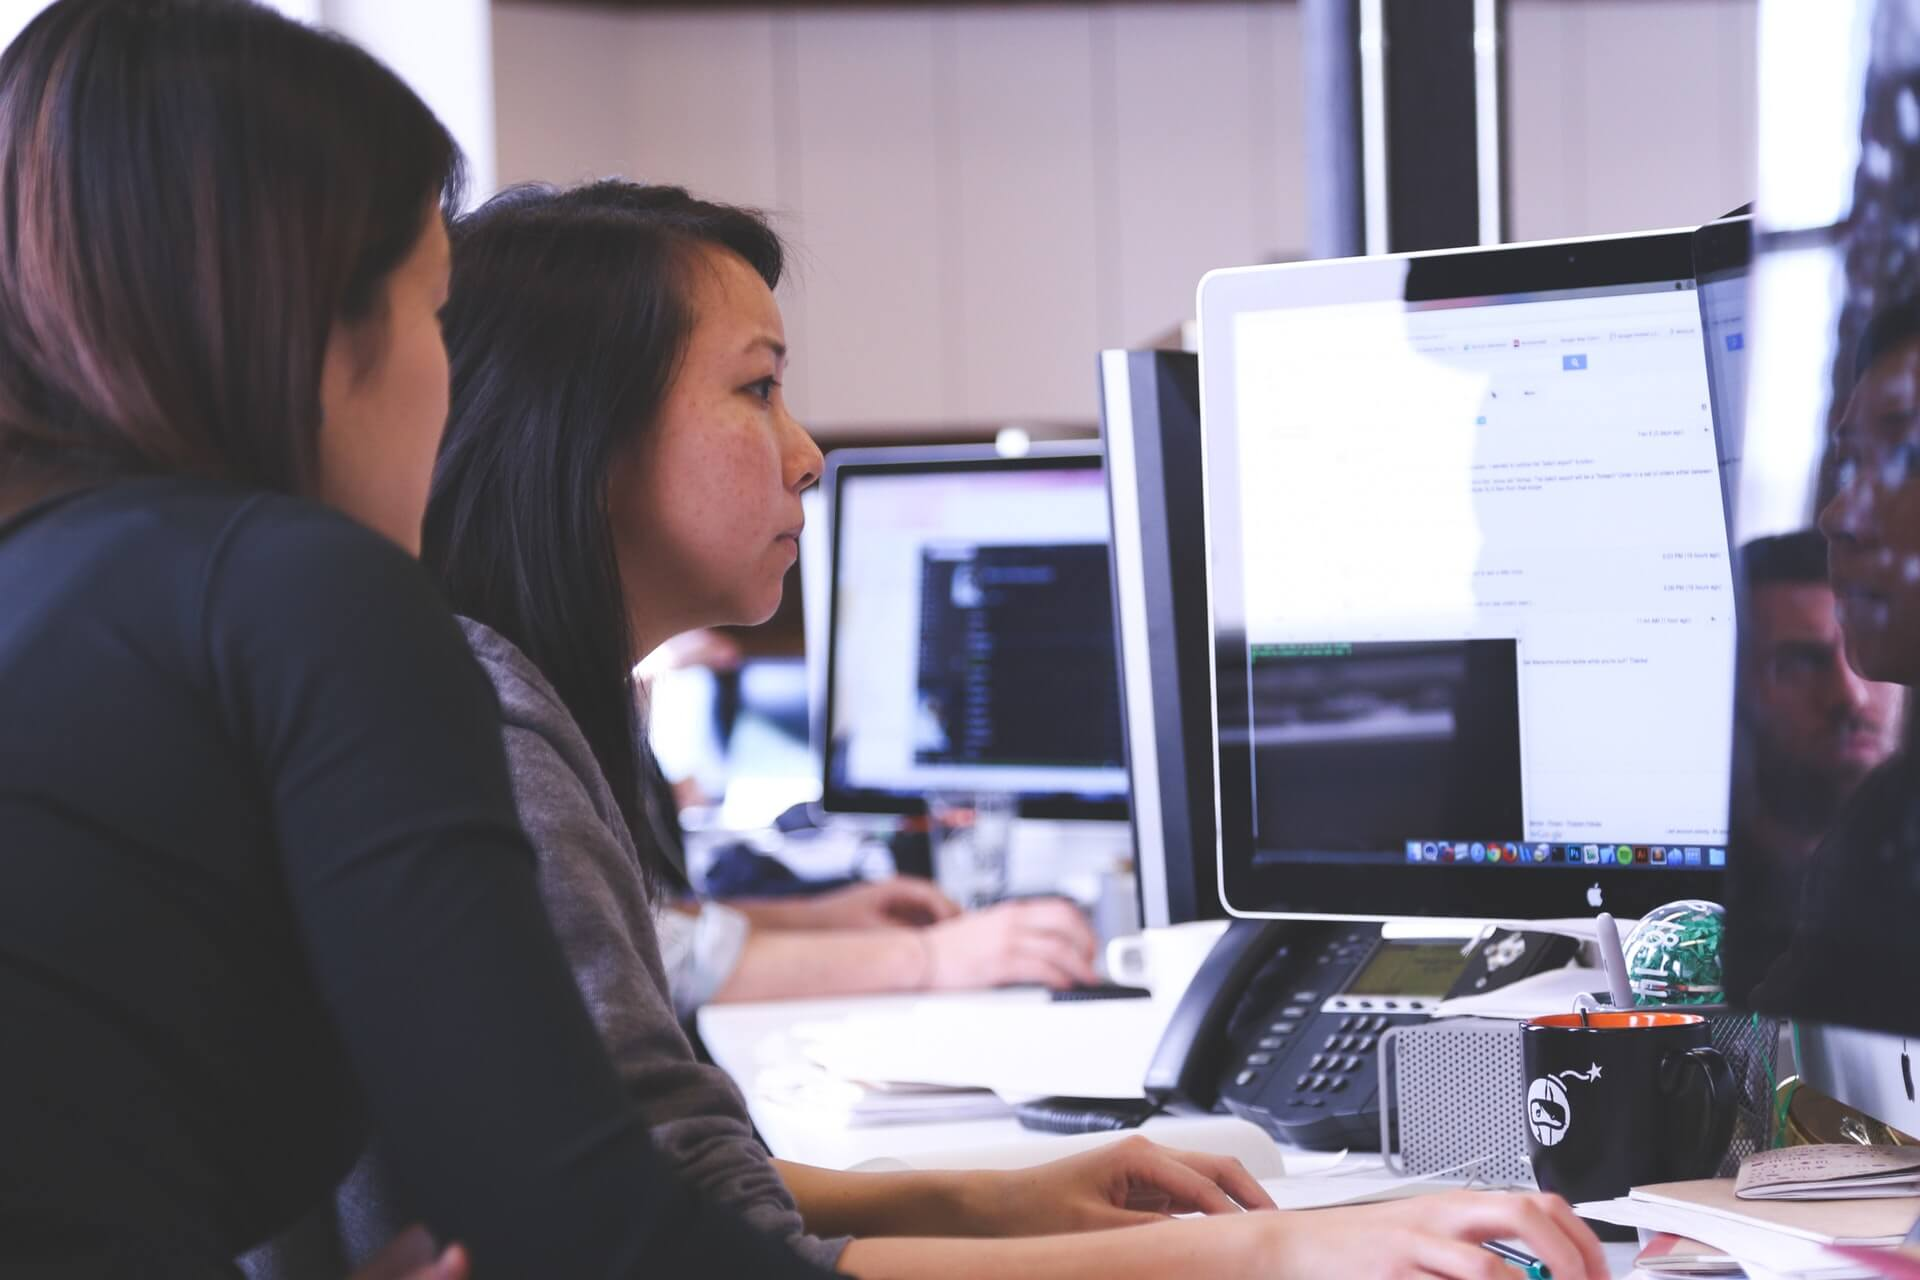 Pros and cons of using an employee monitoring software